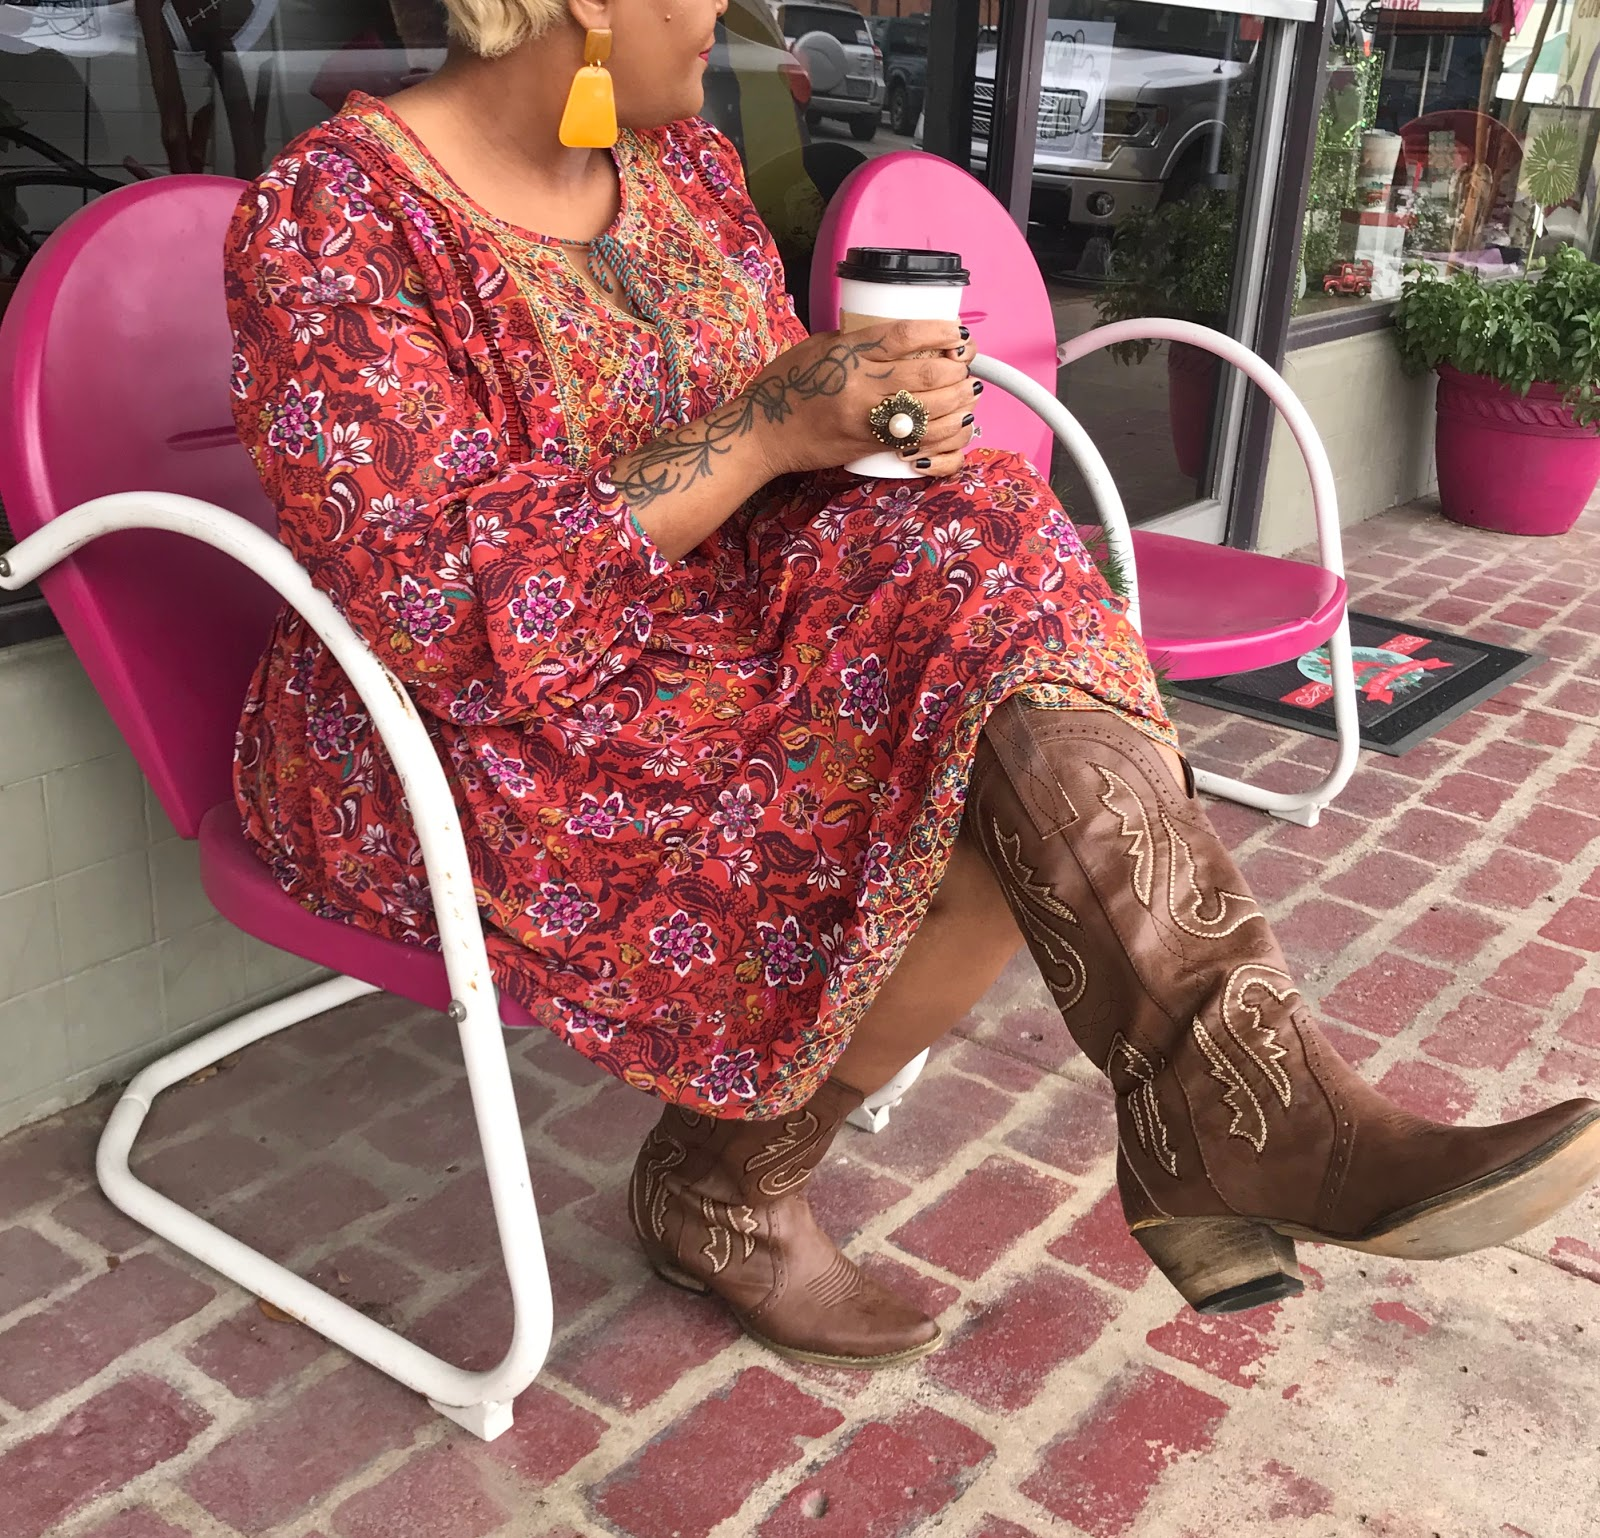 Wearing bobo dress with cowgirl boots and 70's inspired earrings. Judge My Style Outfit Of The Day